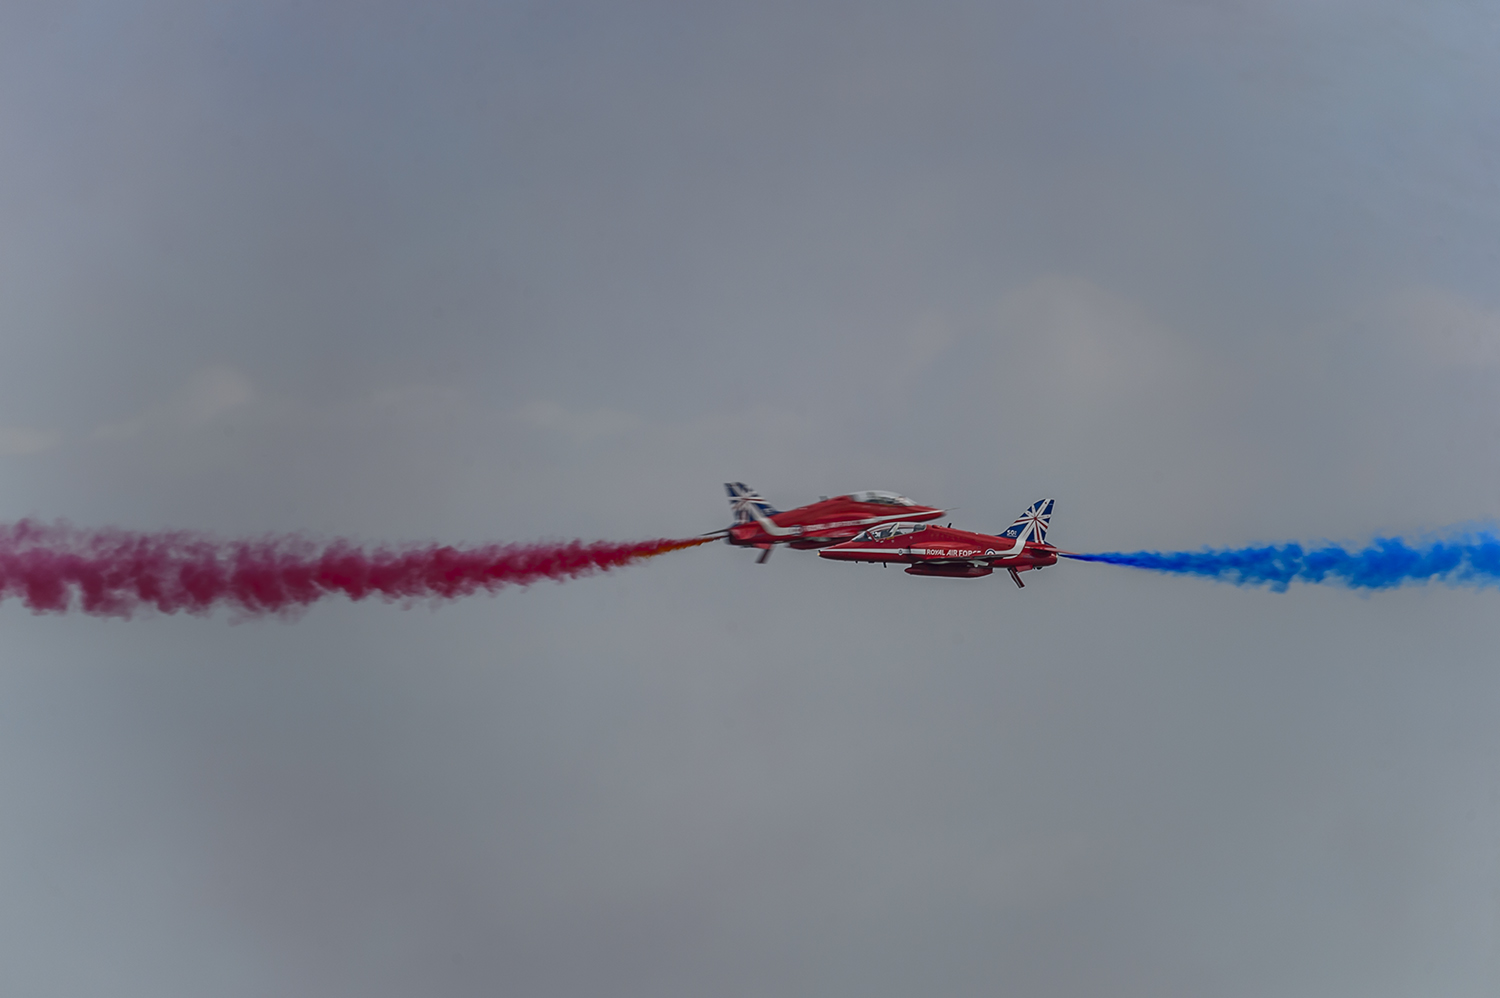 Red-Arrows-RAF-Aerobatic-Team-Eastbourne-RKing-14-020973-vv